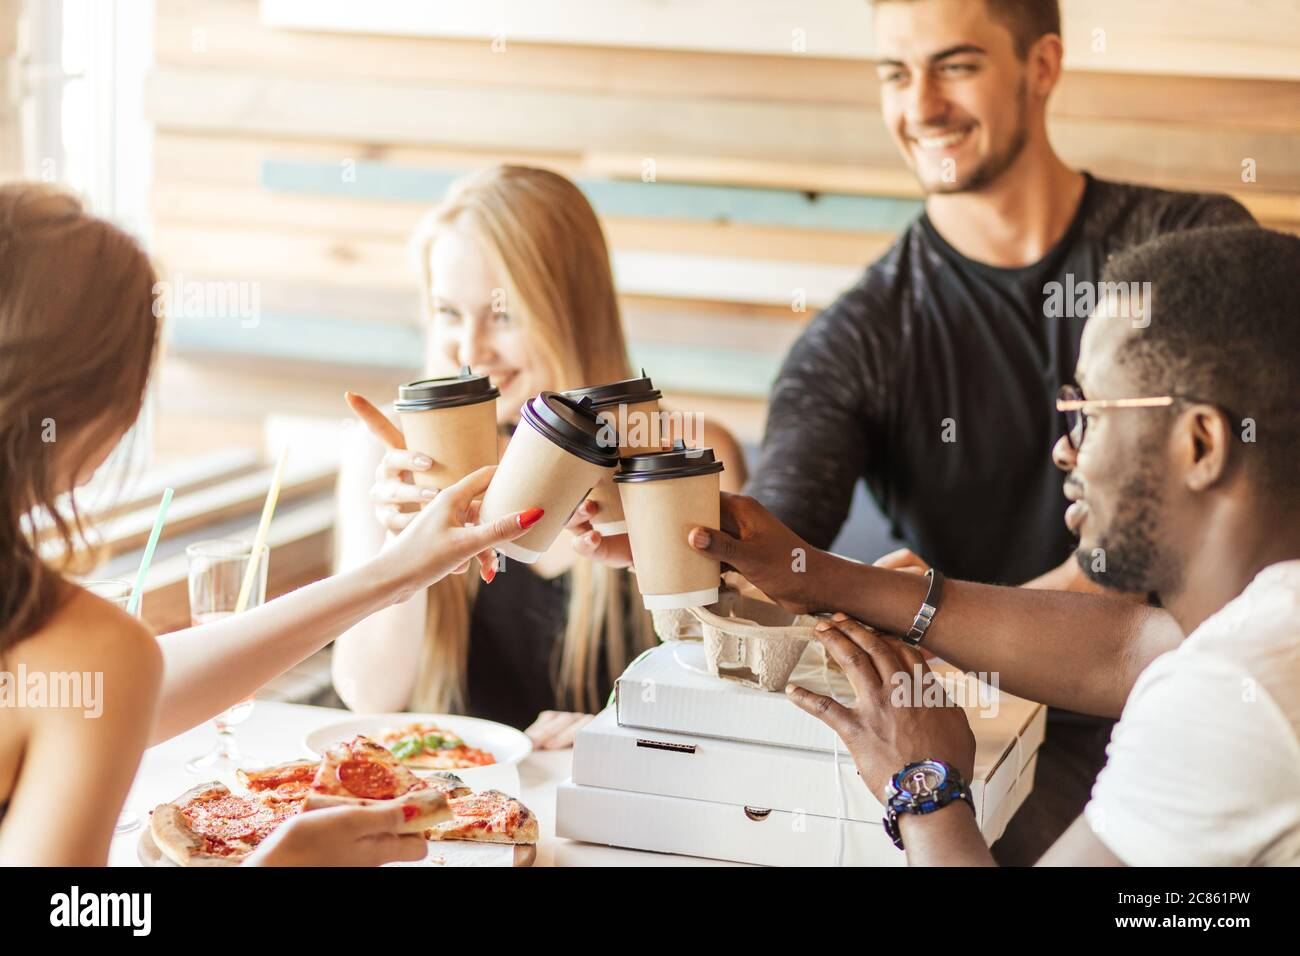 Group of young multiracial friends hanging out at a coffee shop. Young men and women meeting in a cafe having fun, eating pizza and drinking coffee Stock Photo